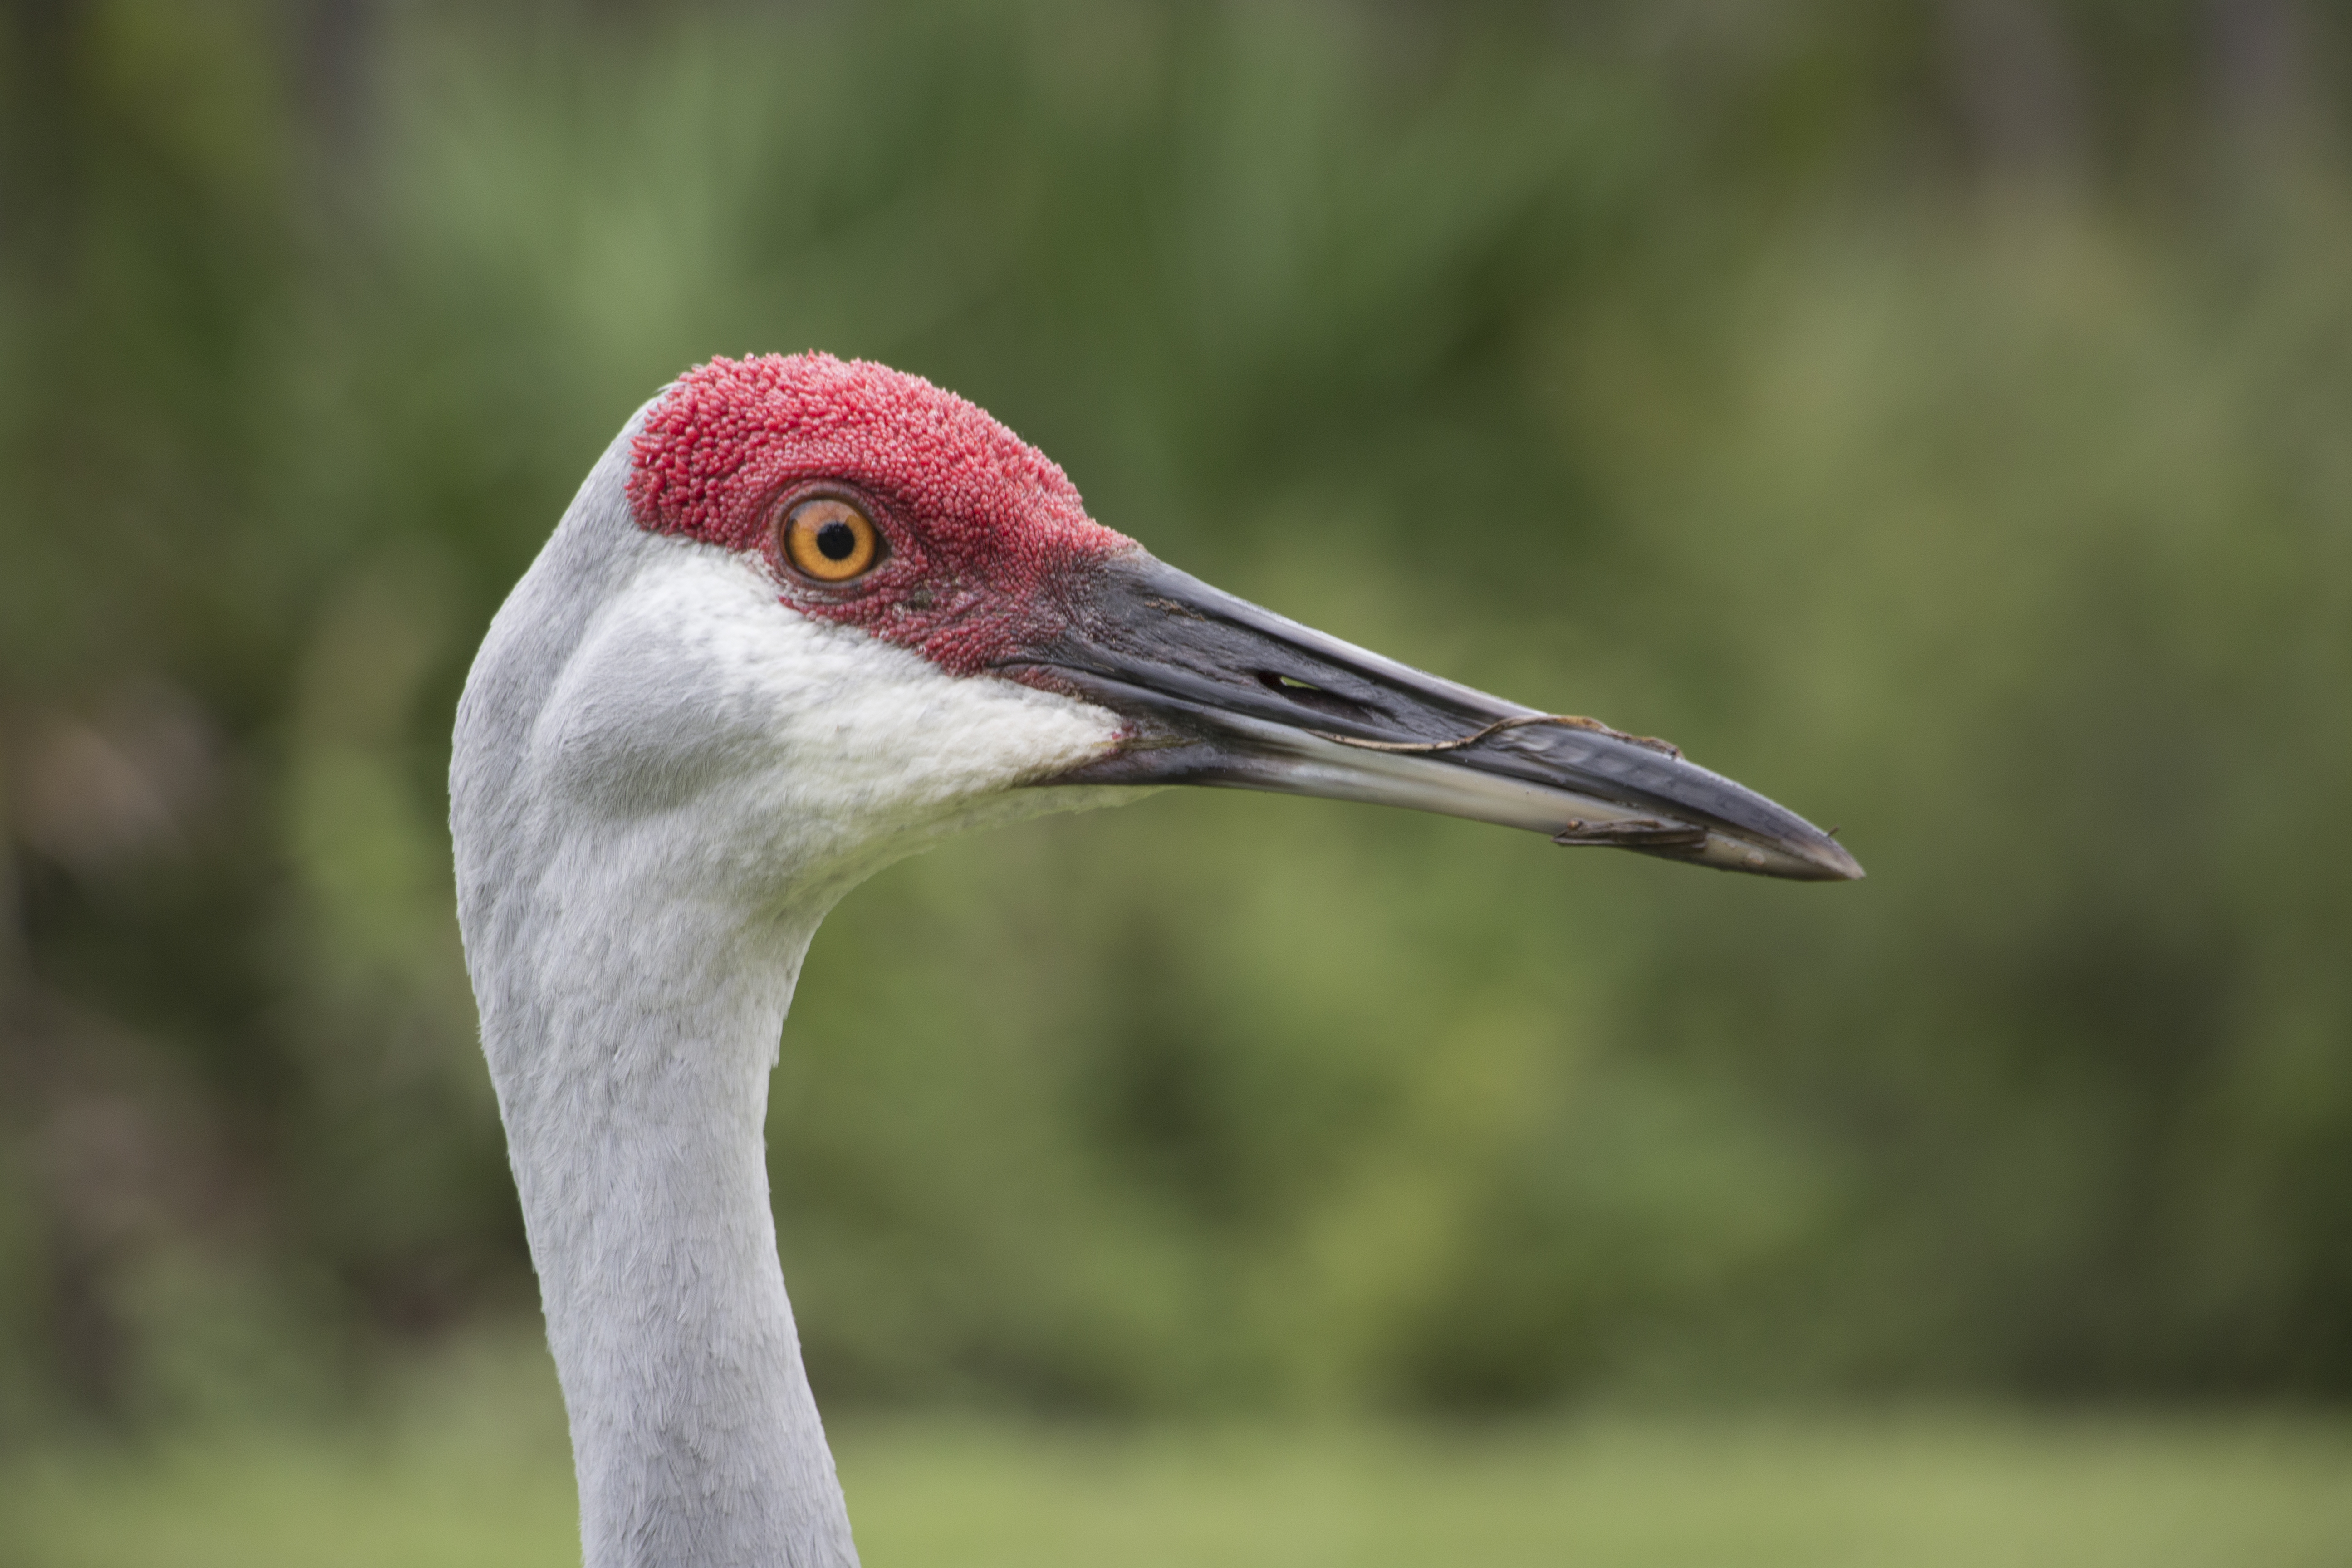 My Friend – Florida Sandhill Crane